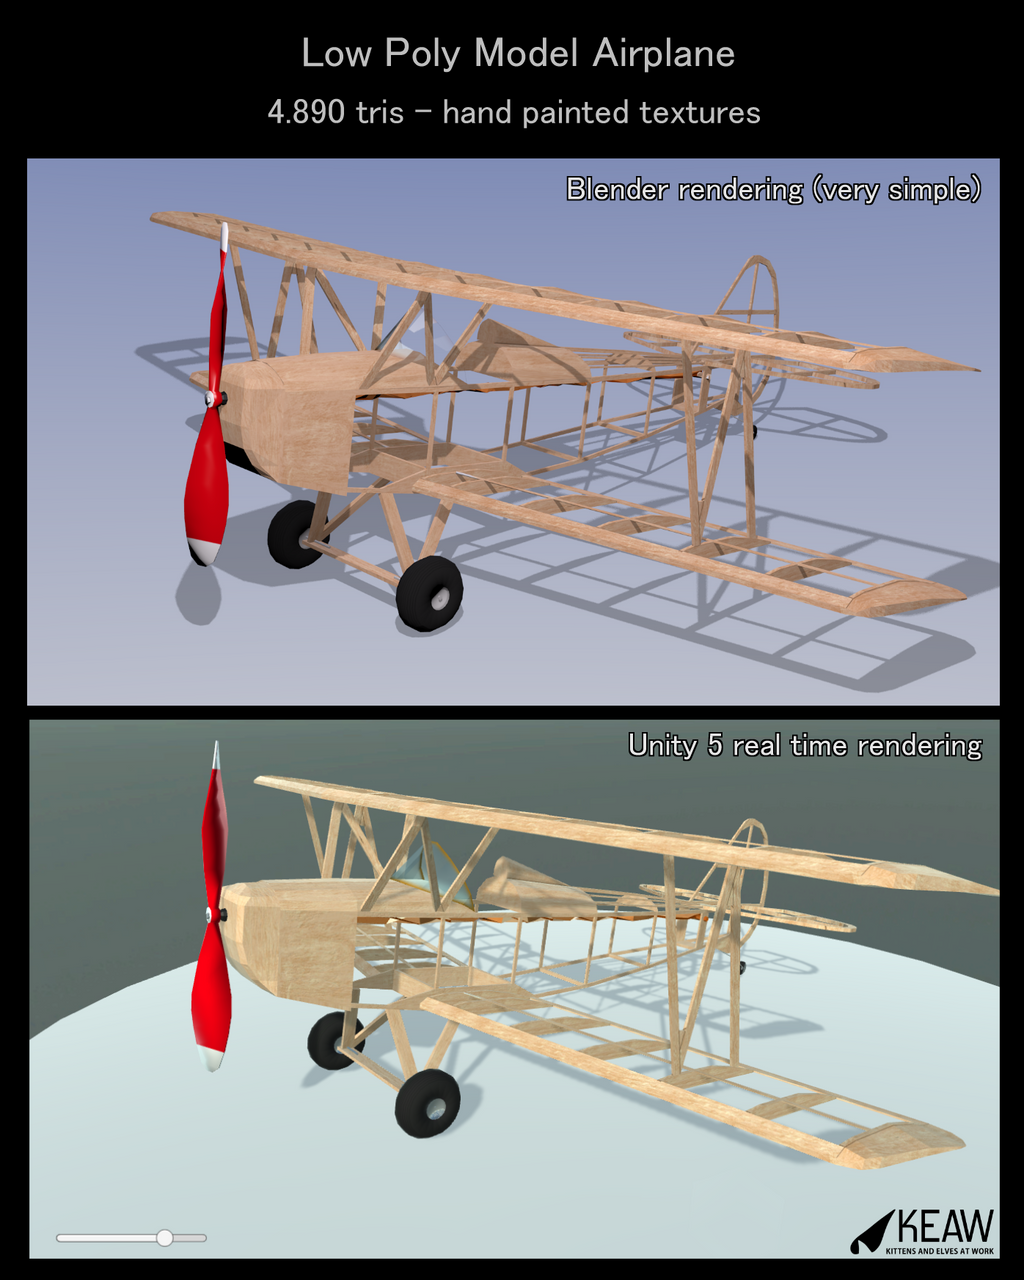 Fly Baby model airplane 3D by dragaodepapel